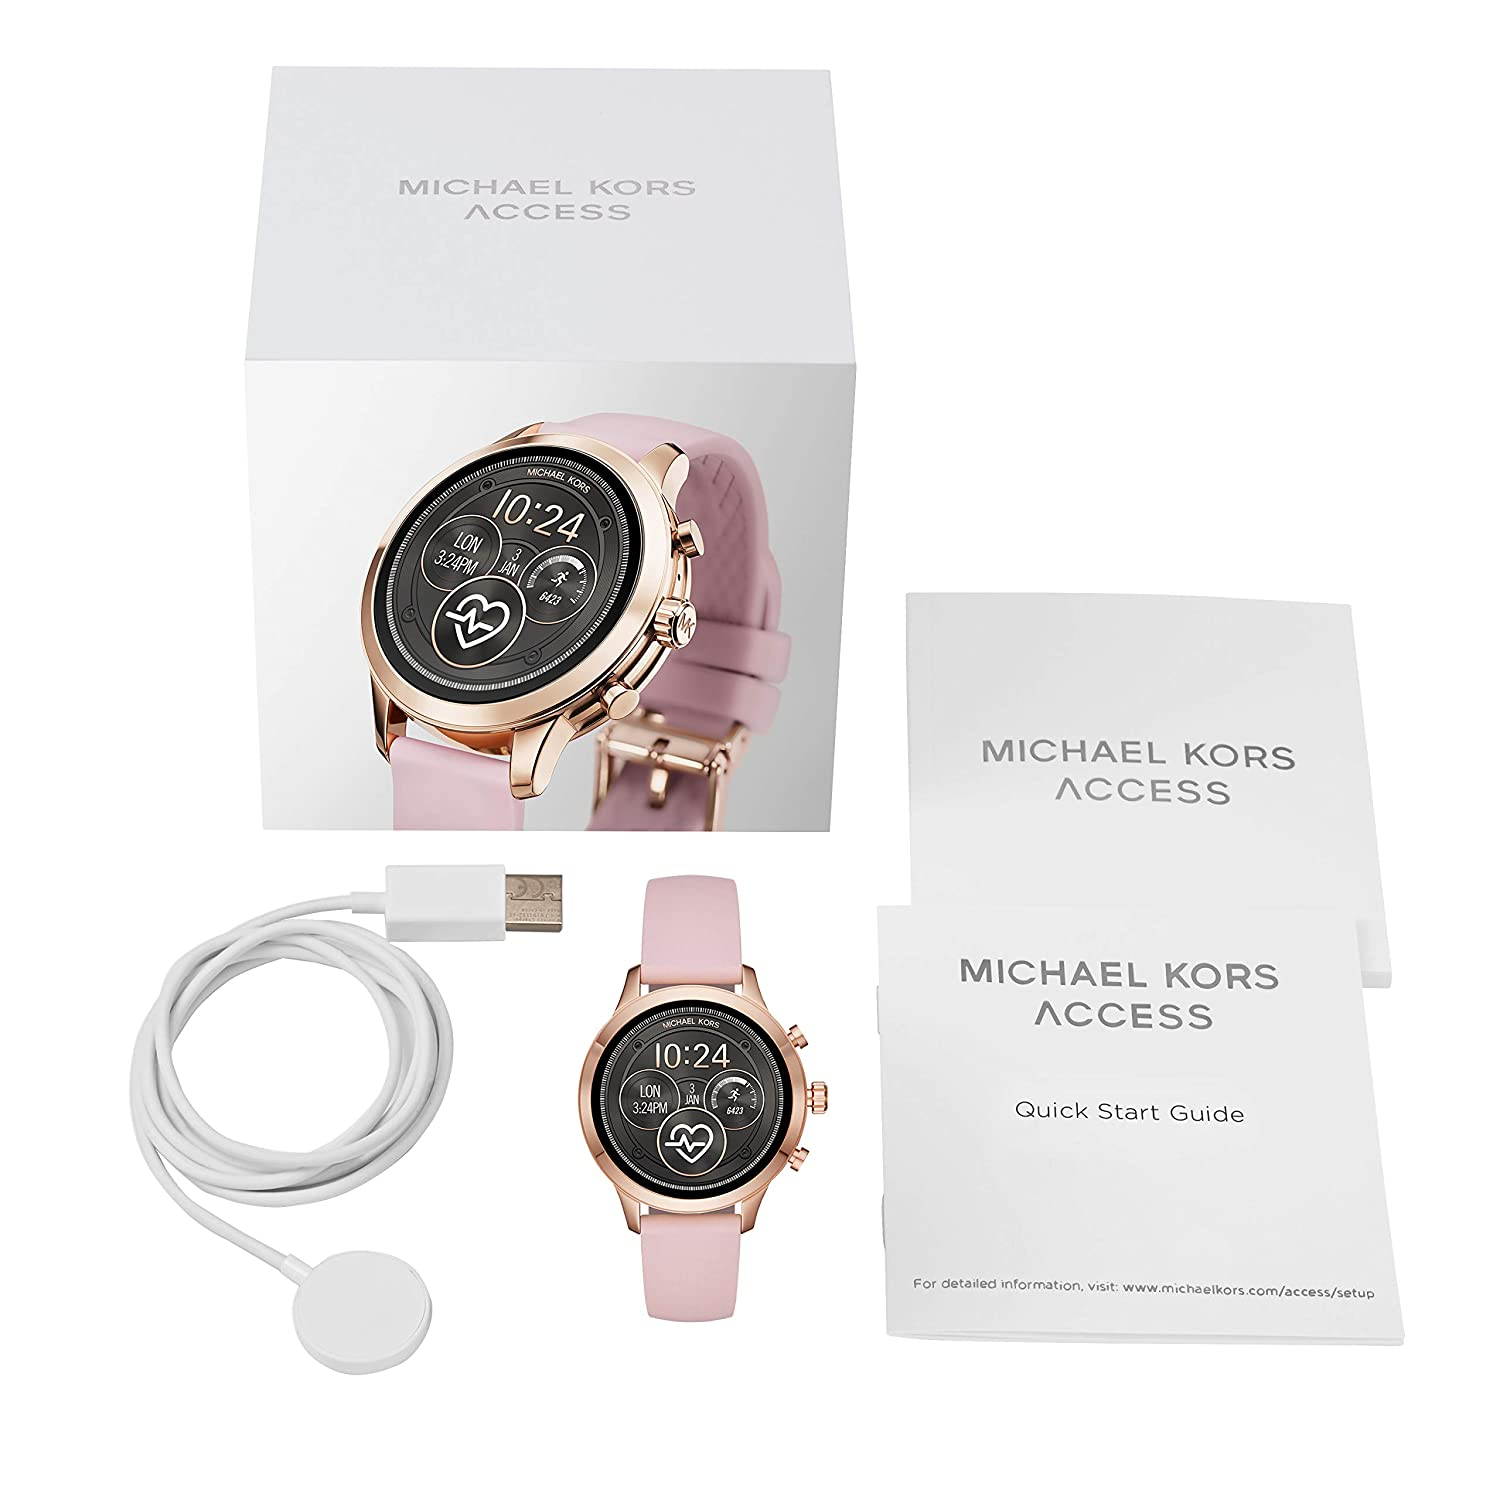 fa7119d0fcb6 Amazon.com  Michael Kors Women s Access Runway Stainless Steel Silicone  Smart Watch